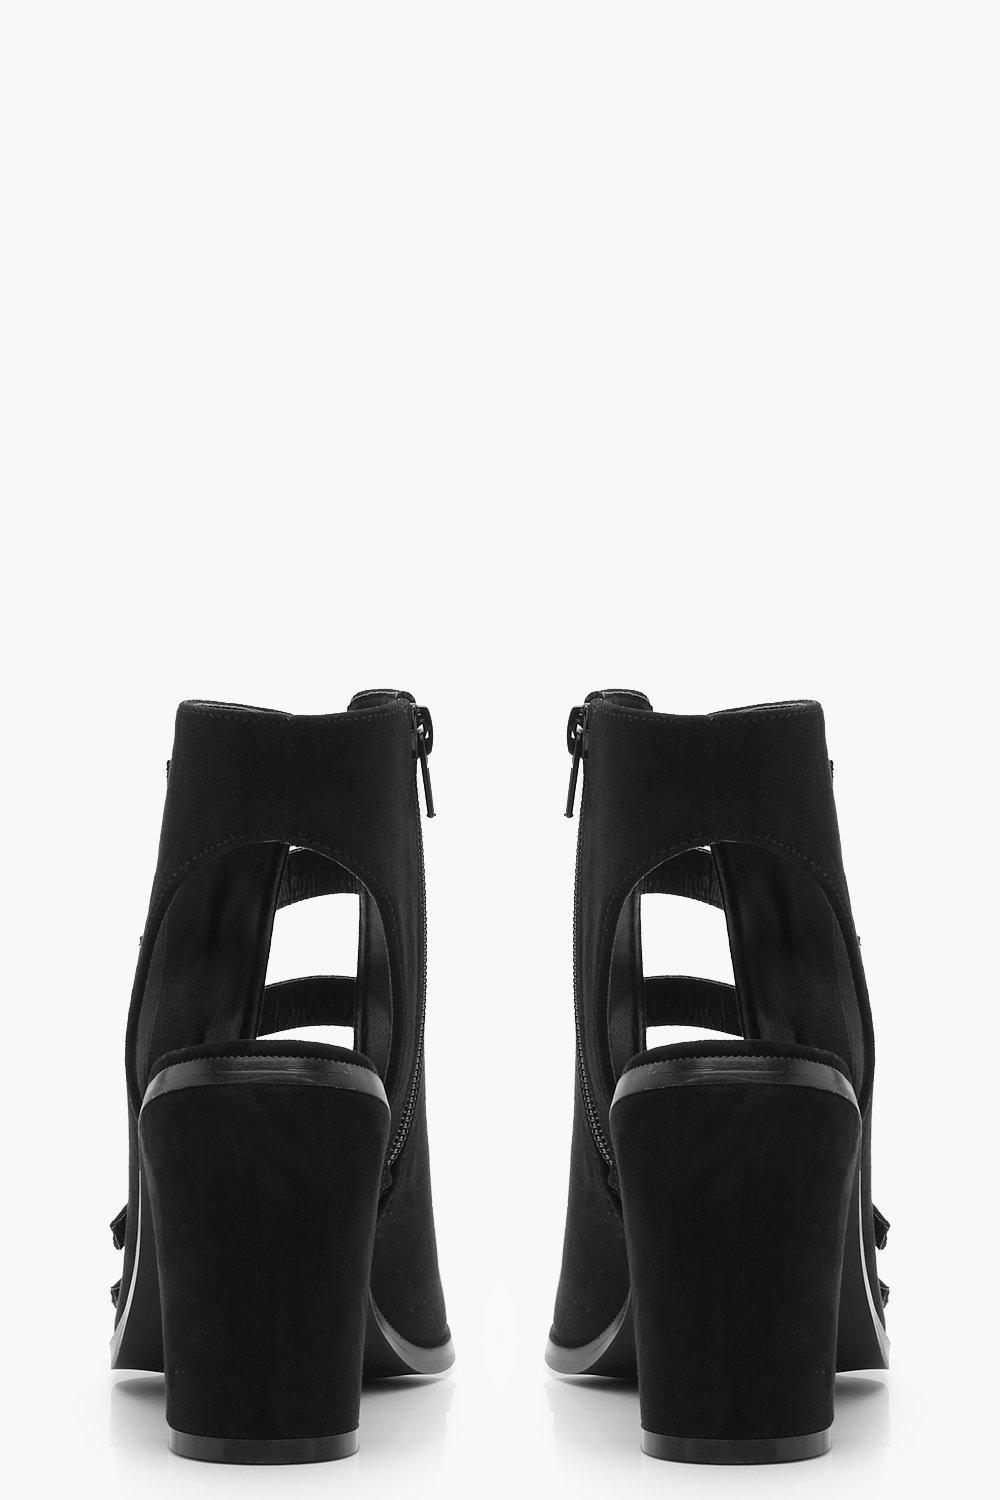 Boohoo Suede Multi Buckle Peeptoe Shoe Boots in Black